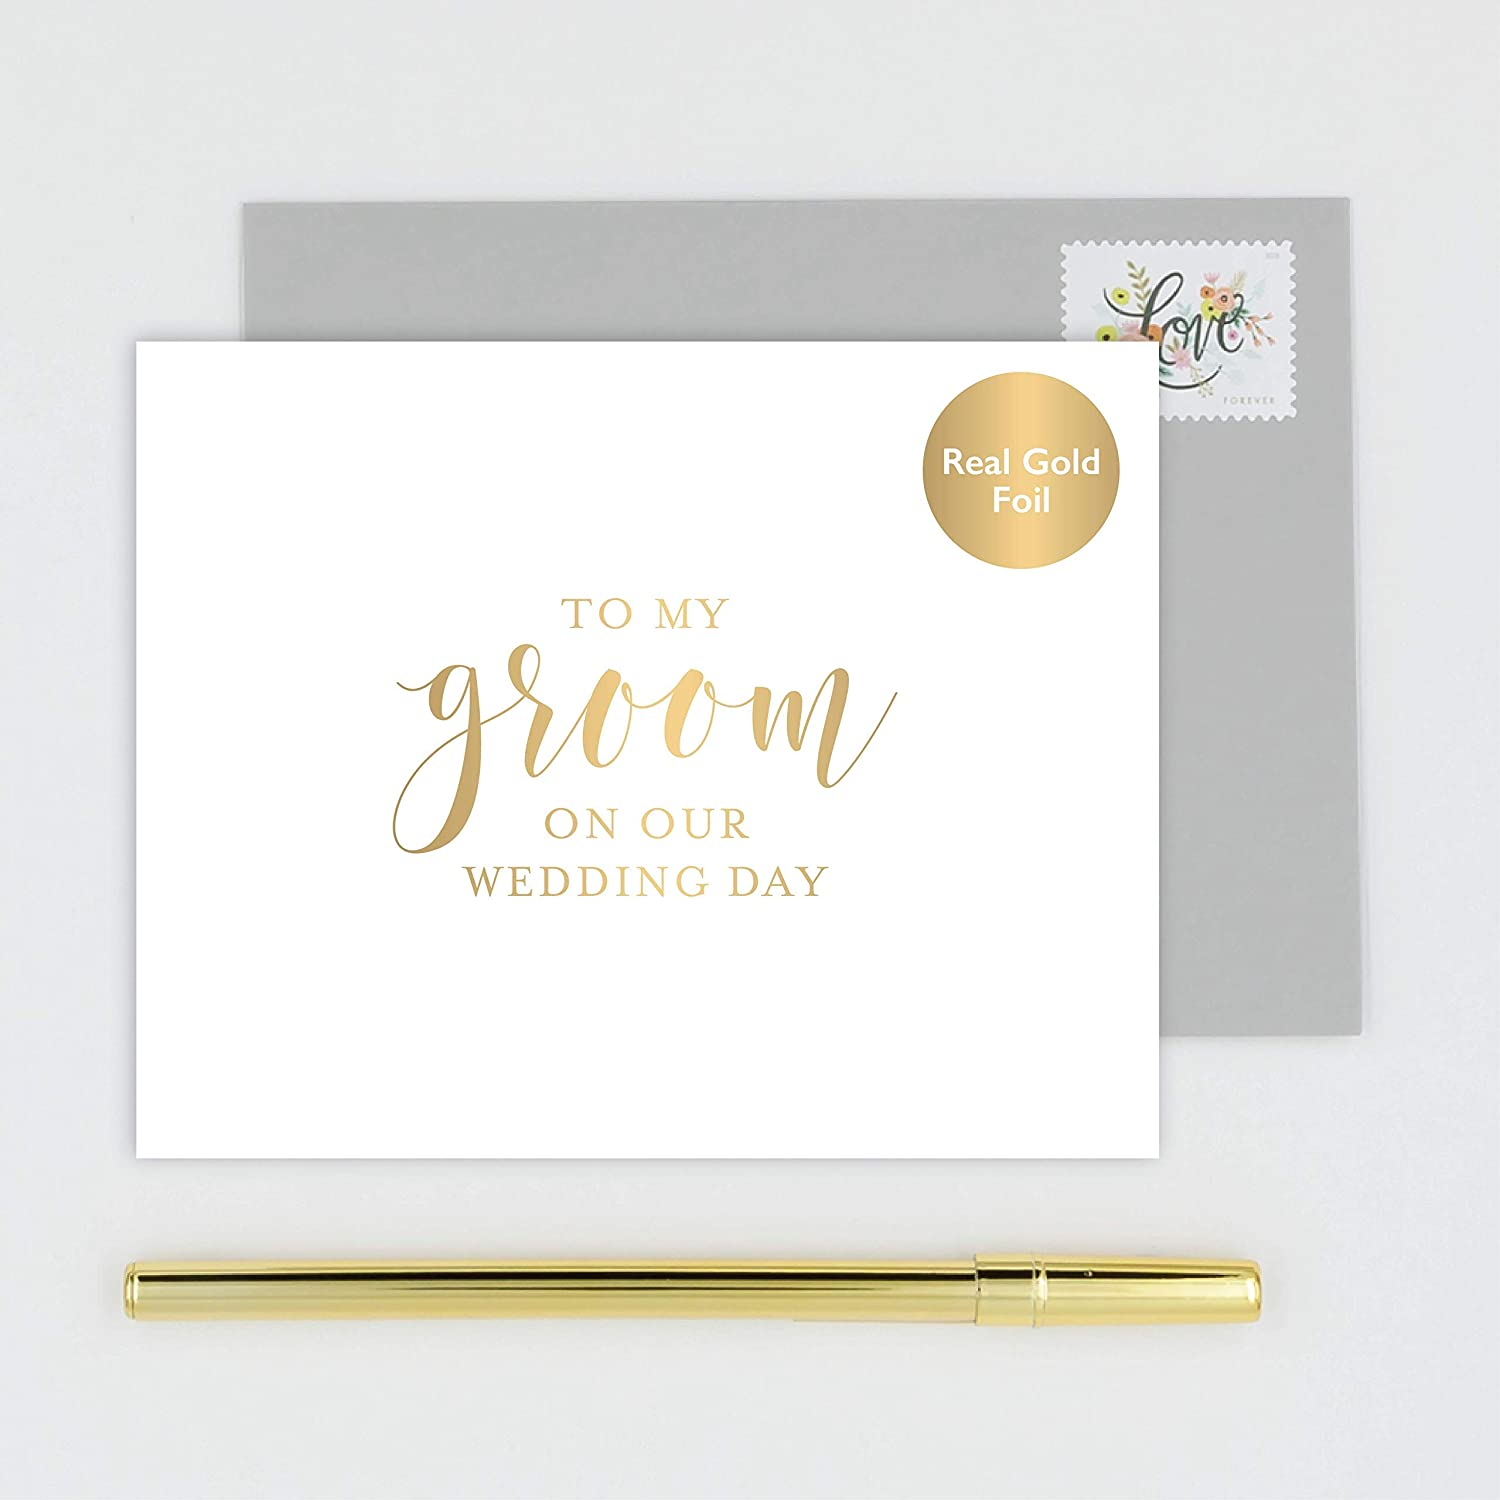 Amazon com to my groom on our wedding day card for husband handmade white card stamped with gold foil calligraphy design with gray envelope handmade